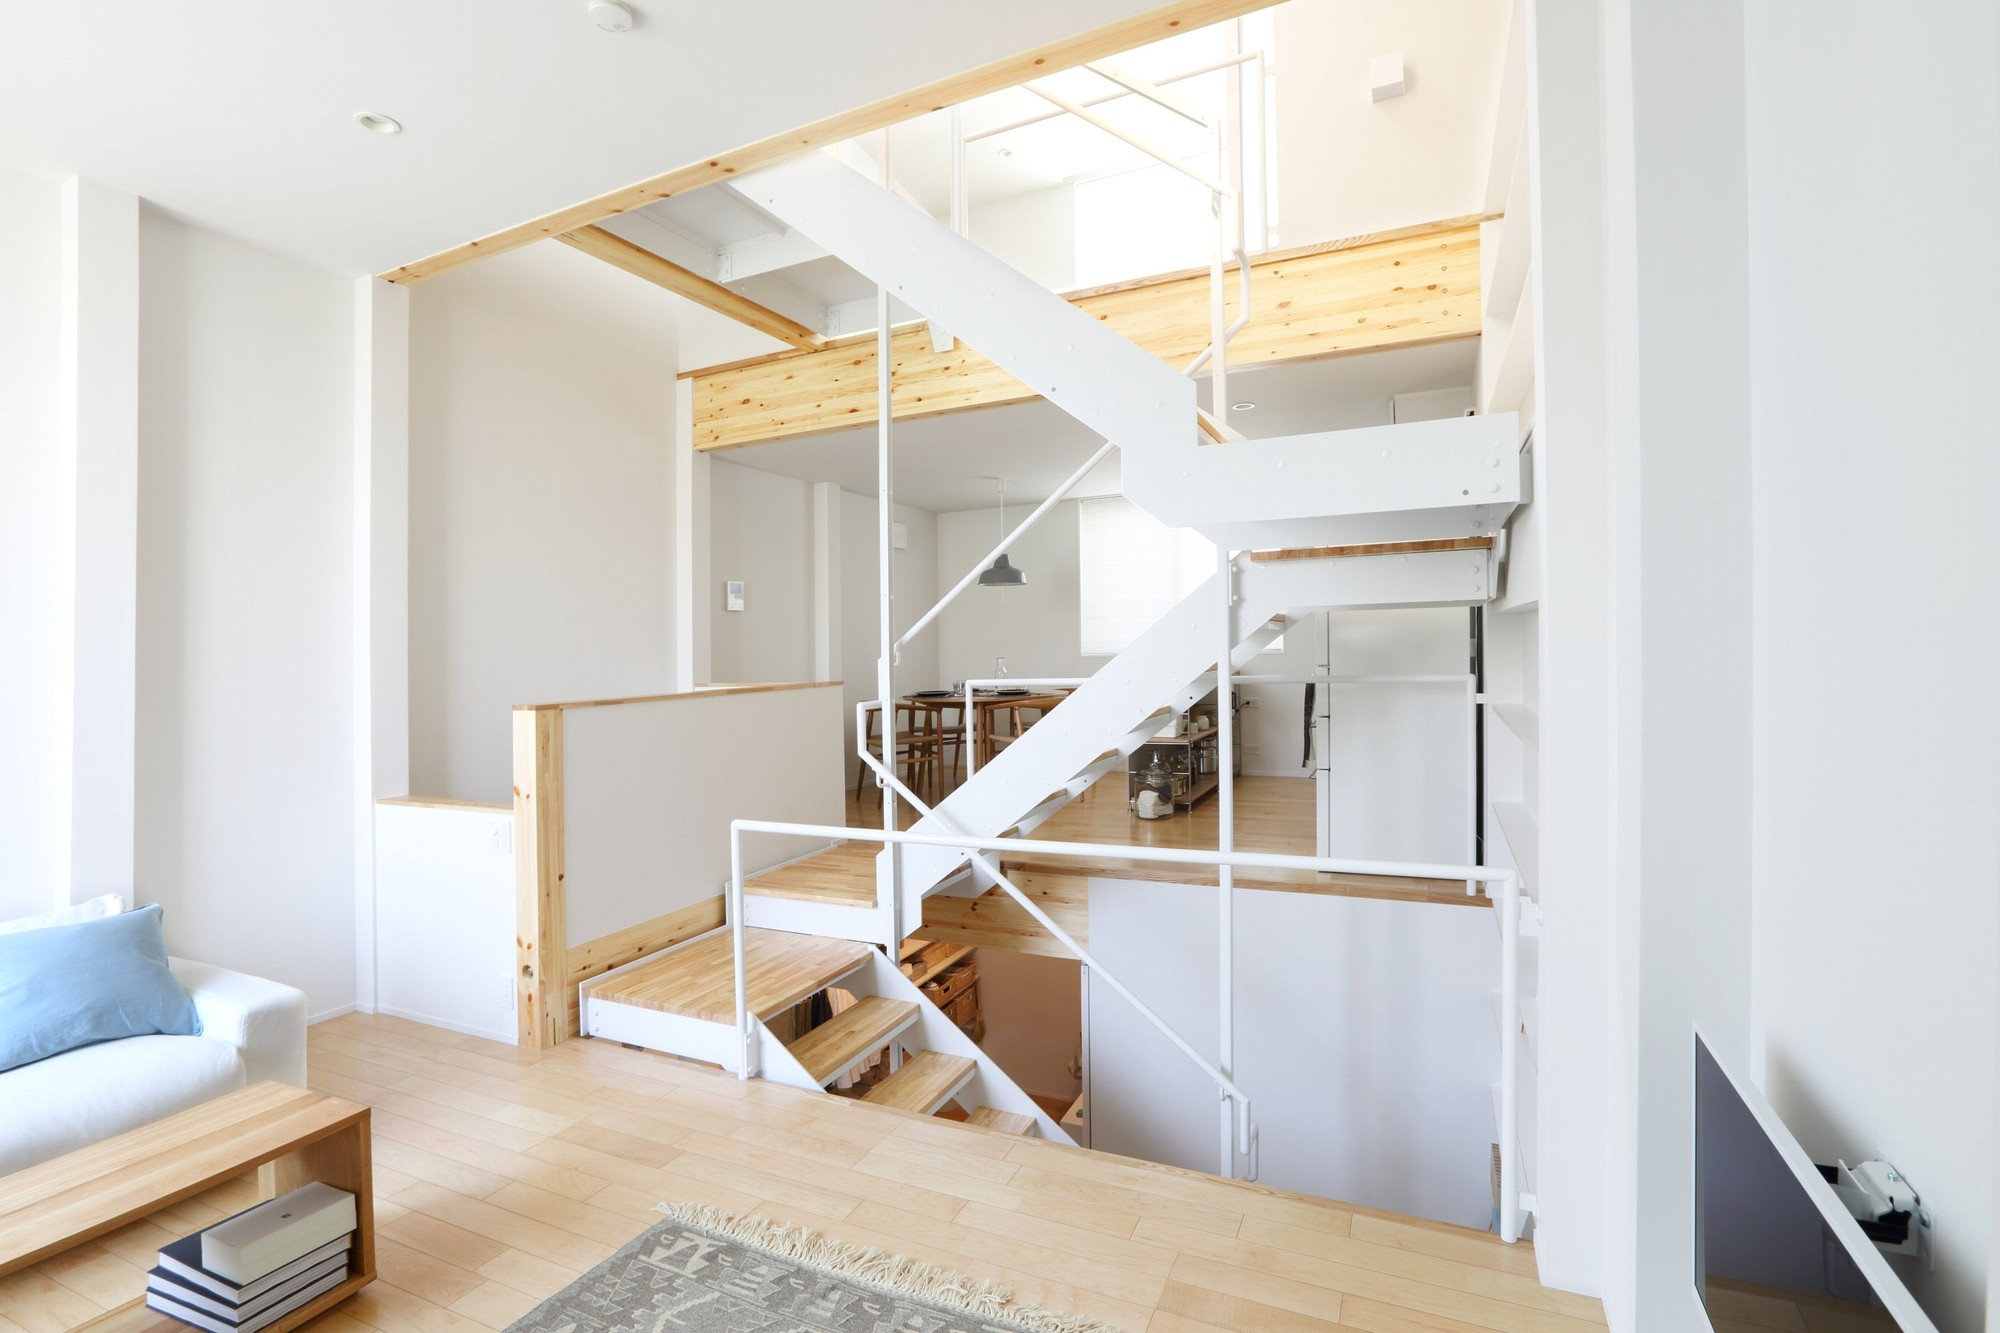 gallery of design your own home with muji's prefab vertical house - 3